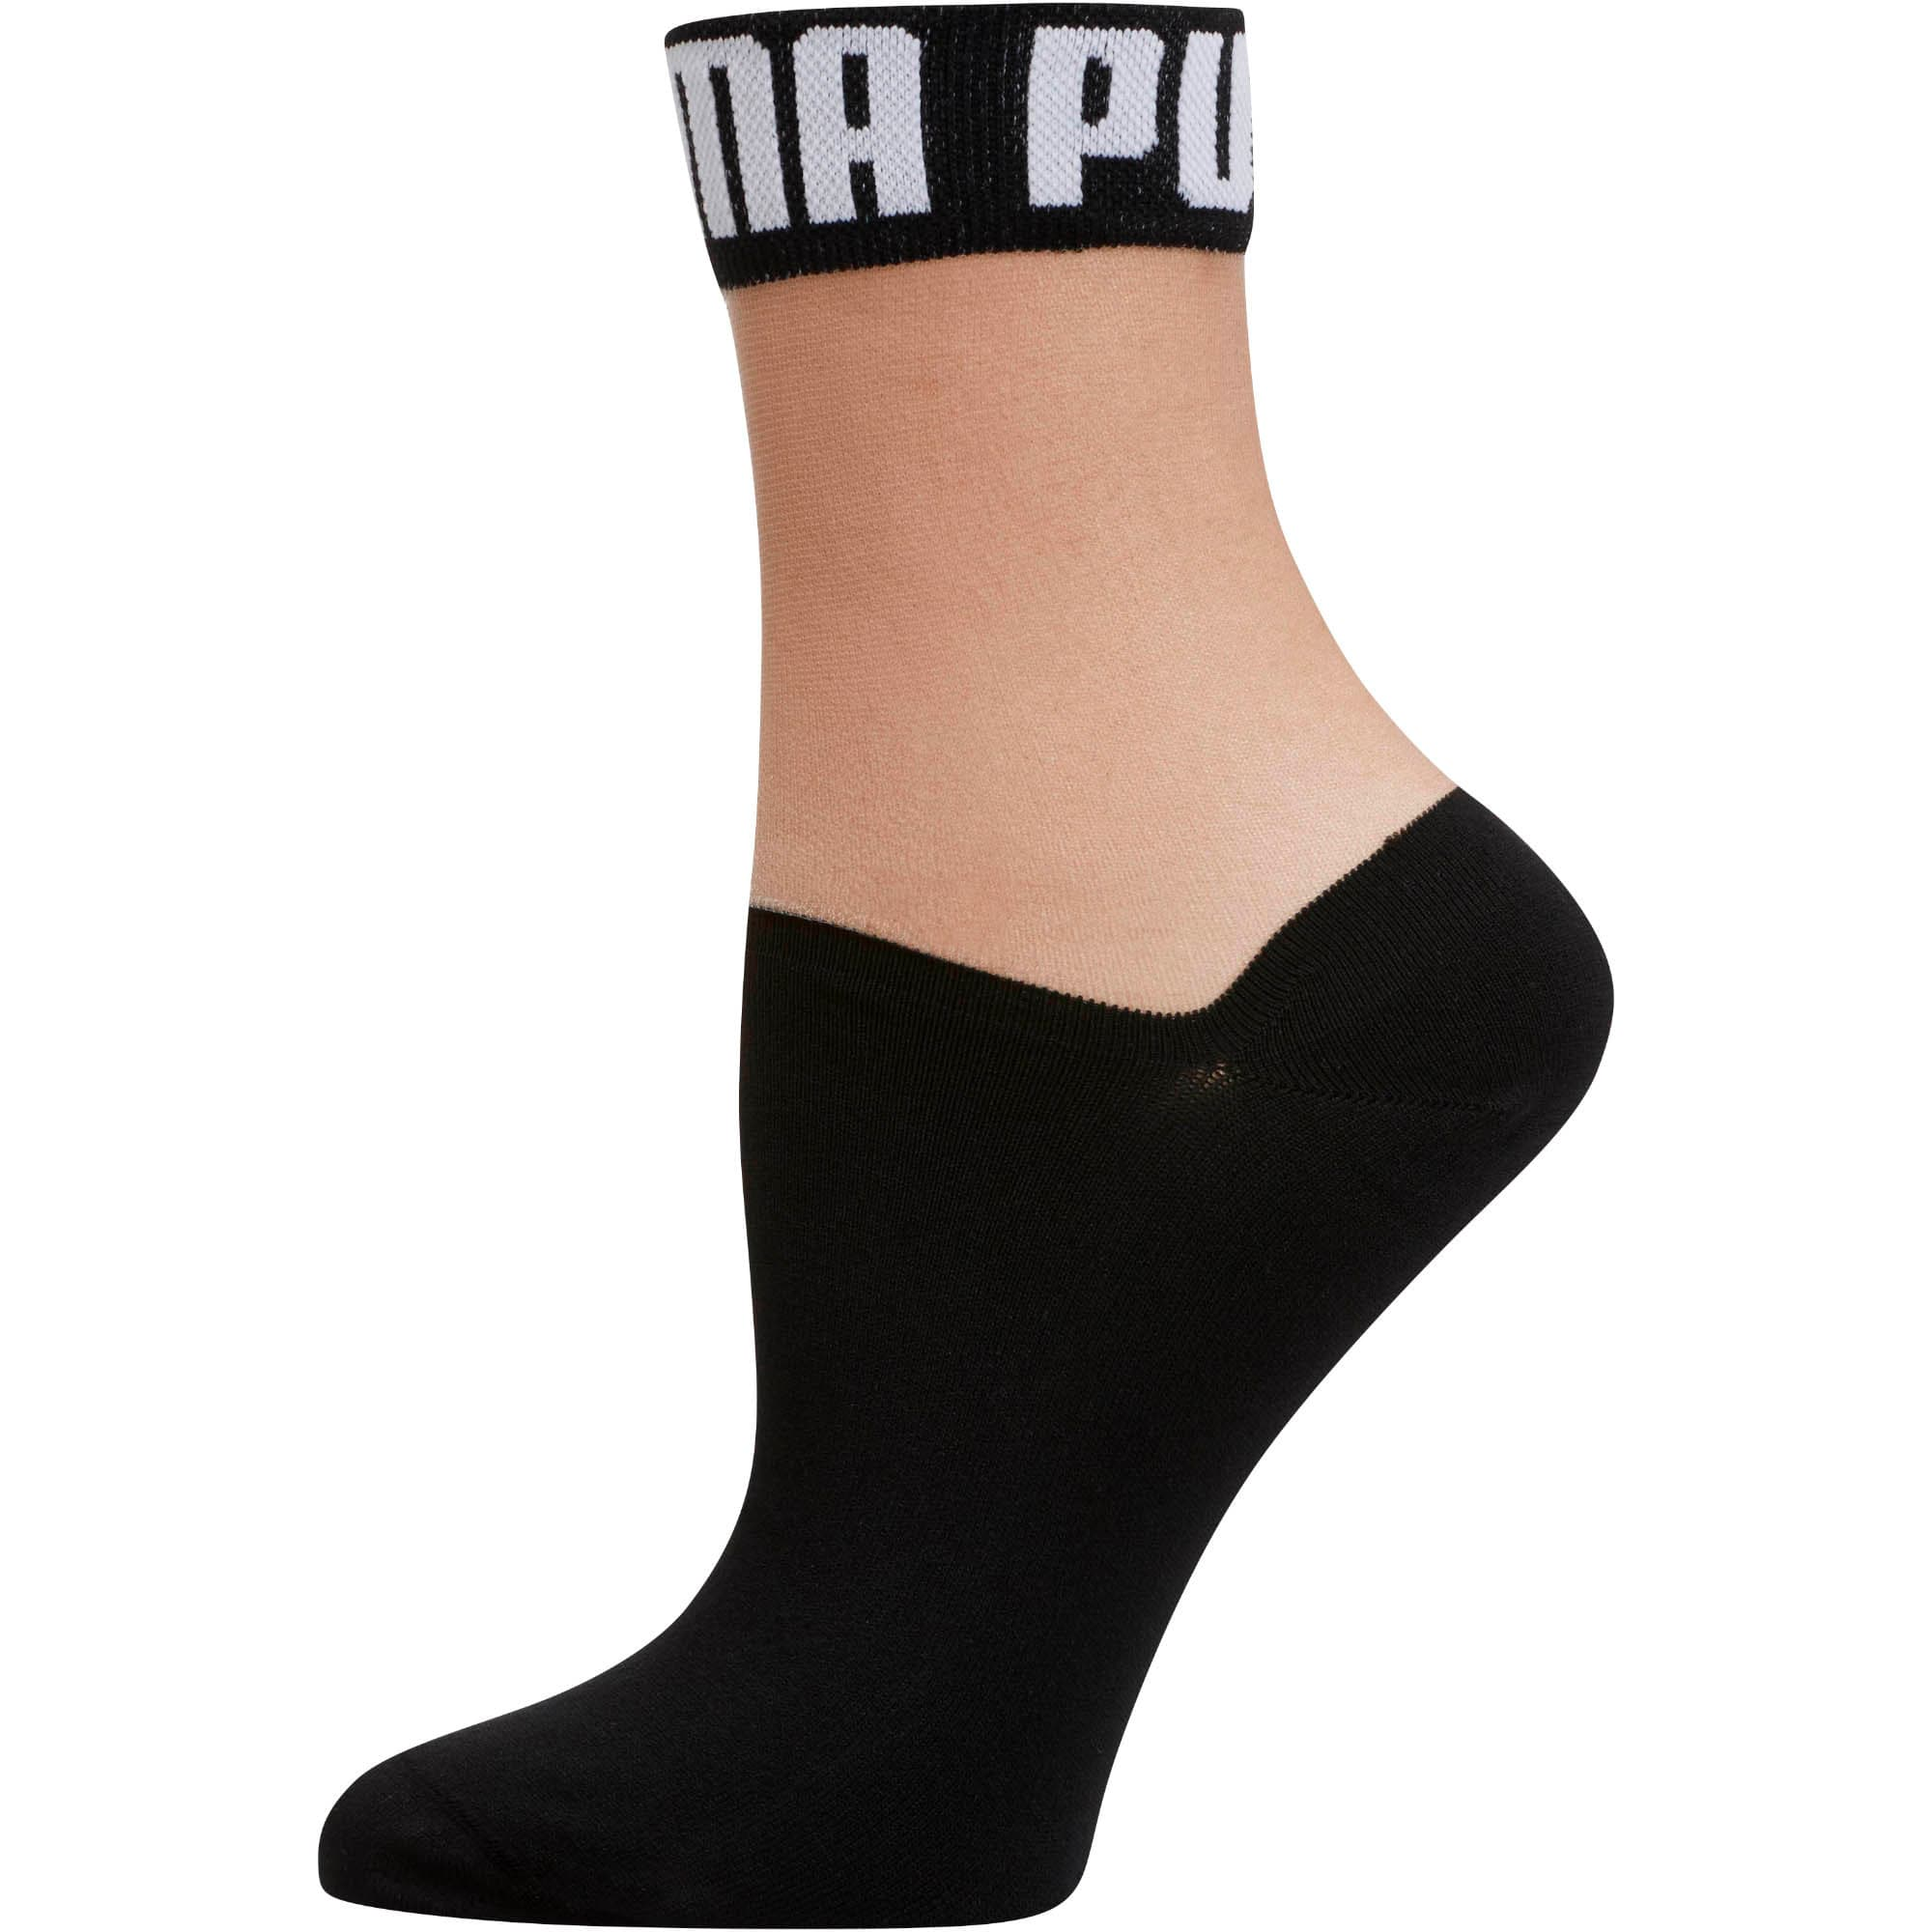 Thumbnail 1 of Women's Low Crew Socks [1 Pair], BLACK / WHITE, medium